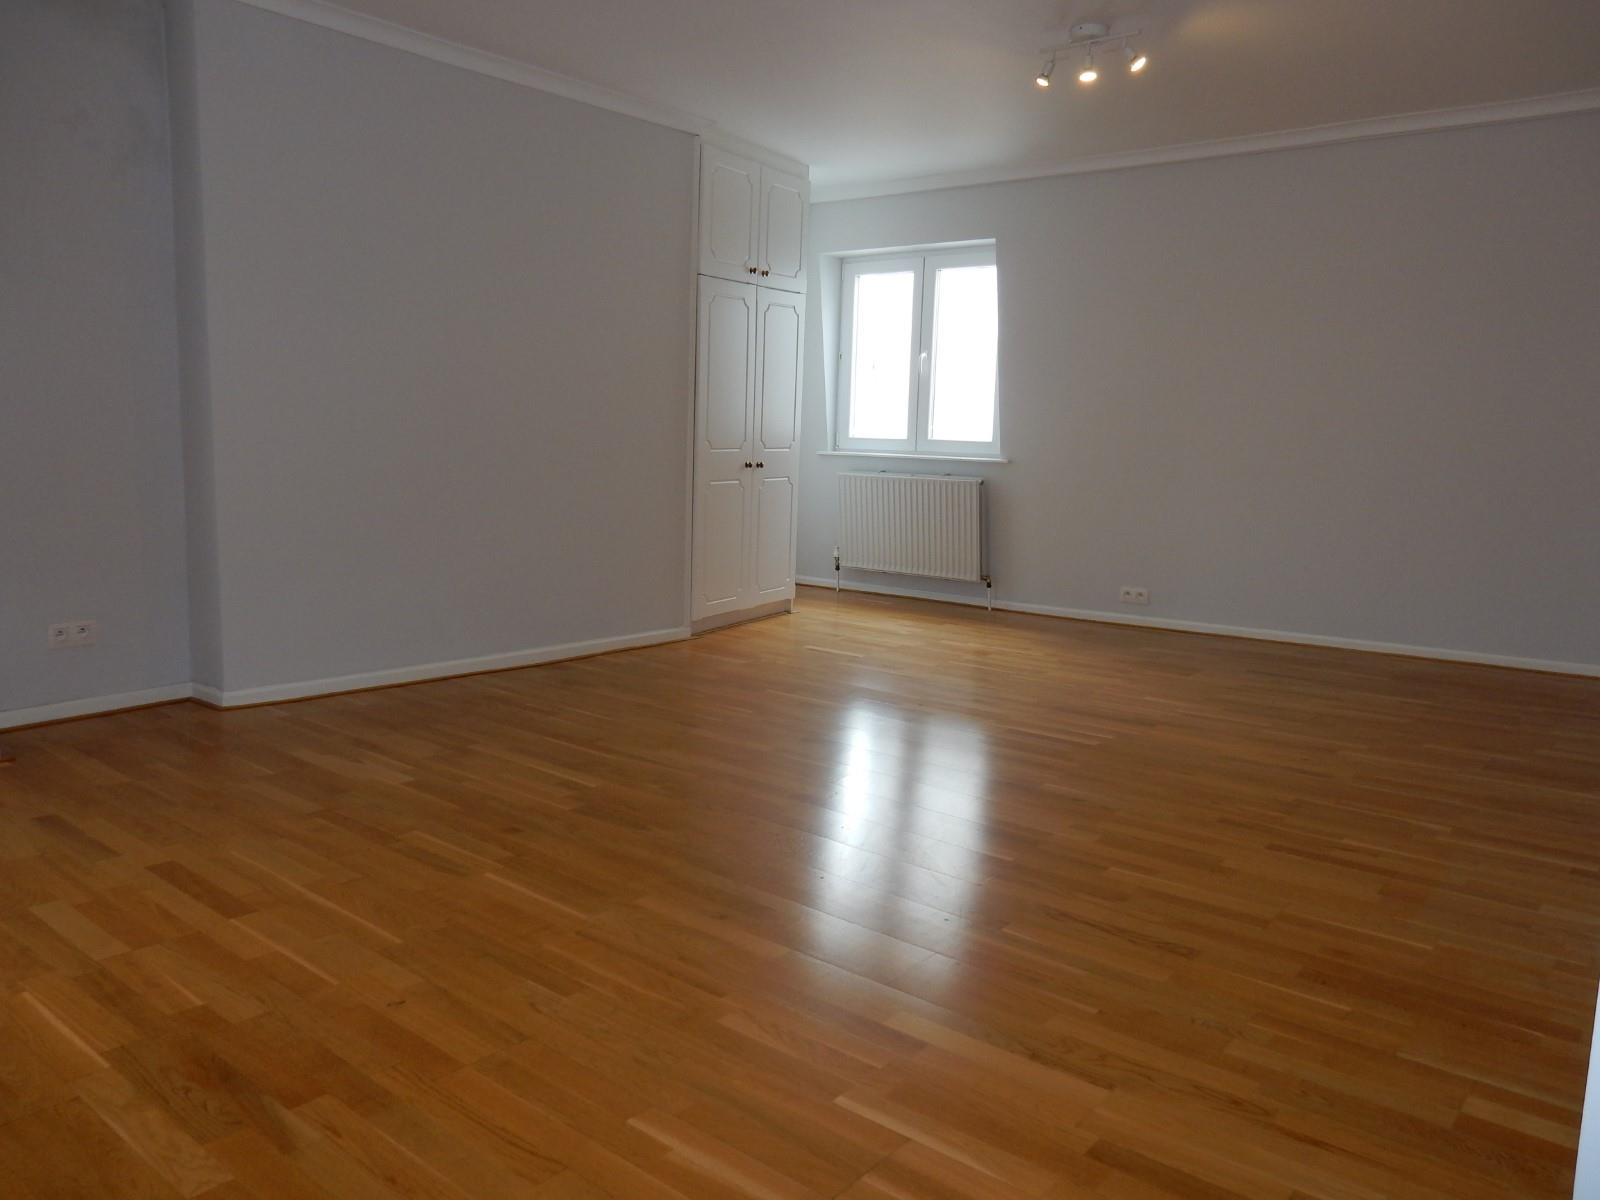 Flat in charming house - Etterbeek - #3183224-9